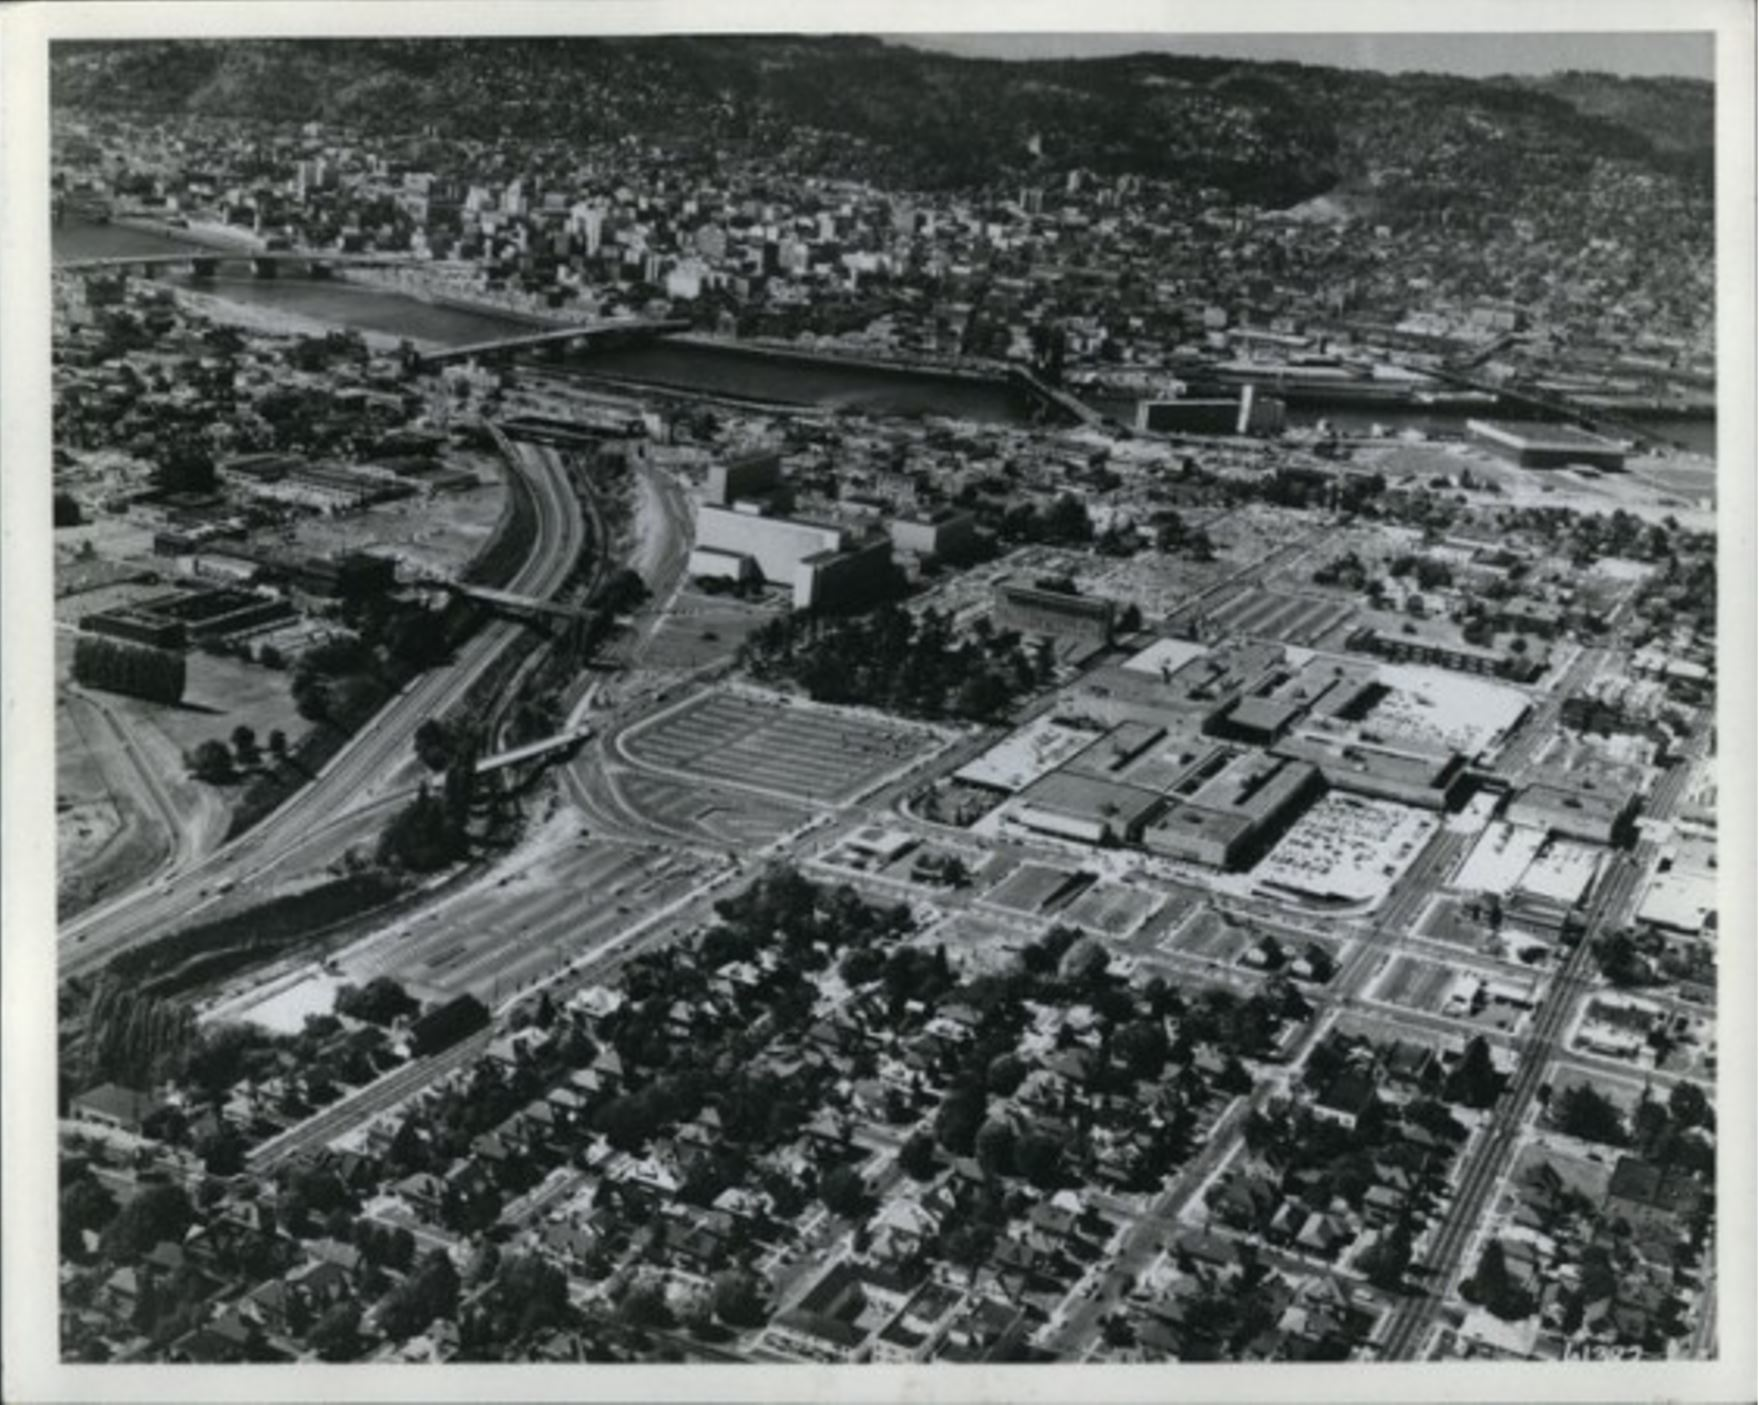 Lloyd Center, 1963 Oregonian Archive photo. There were an additional 3,000 parking spaces under cover at the Lloyd Center at the time.